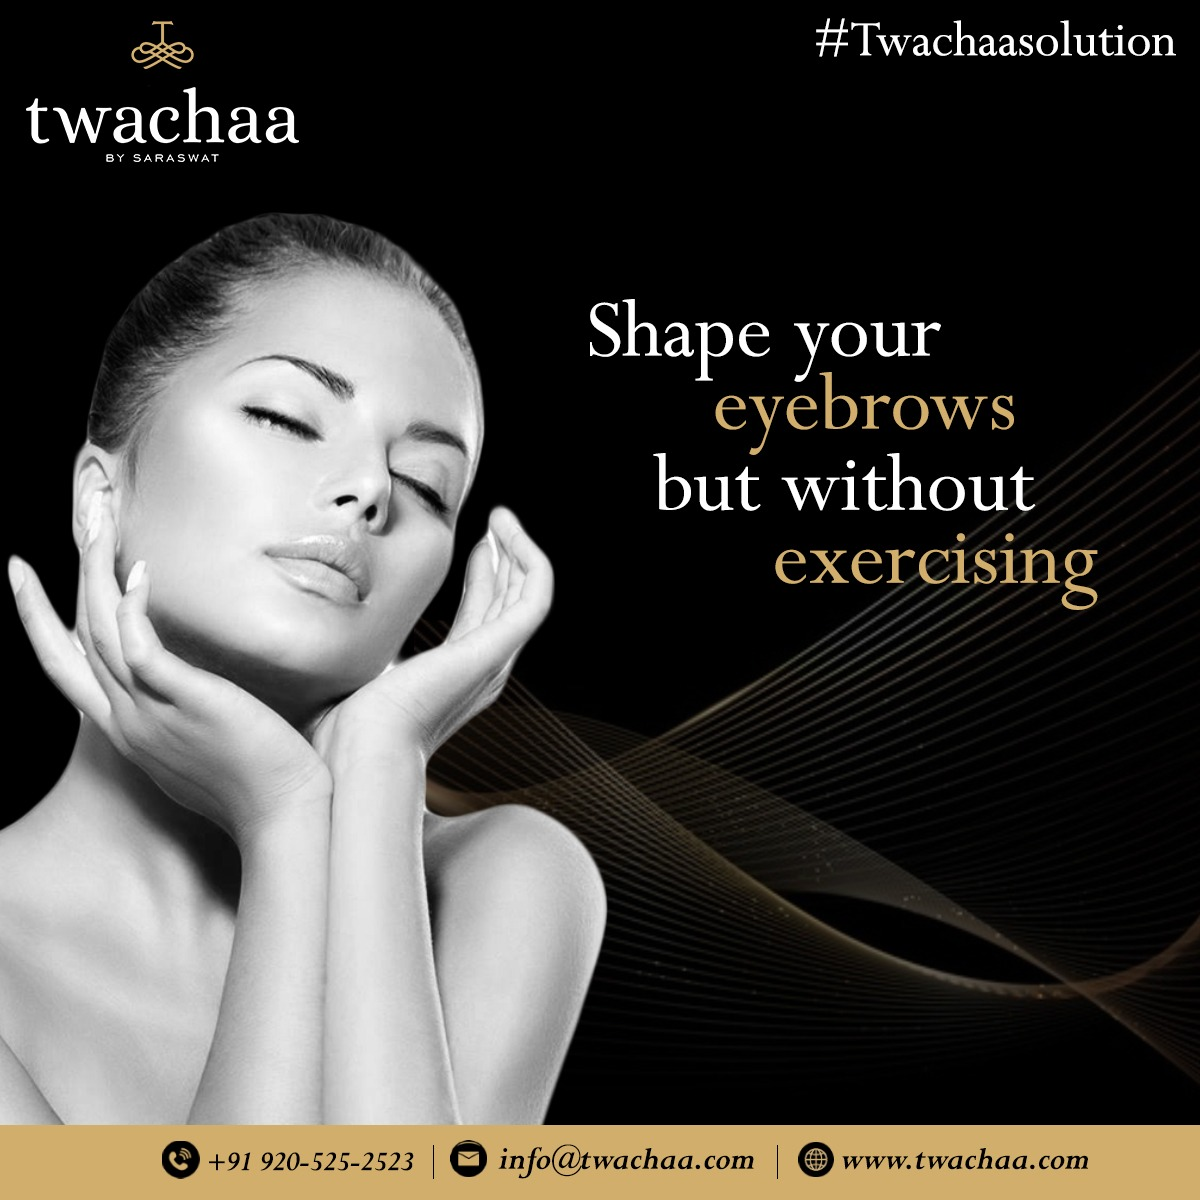 Up your eyebrow game with Twachaa digital eyebrow treatment and be perfect every day.  #bbglow #brows #microblading #micropigmentation #ombrebrows #tattooedbrows #worthing #brighton #london #browtrainingacaedmy #browtraining #liptattooing #dermaplaning #browdefinitionpic.twitter.com/40aAO2G6P1